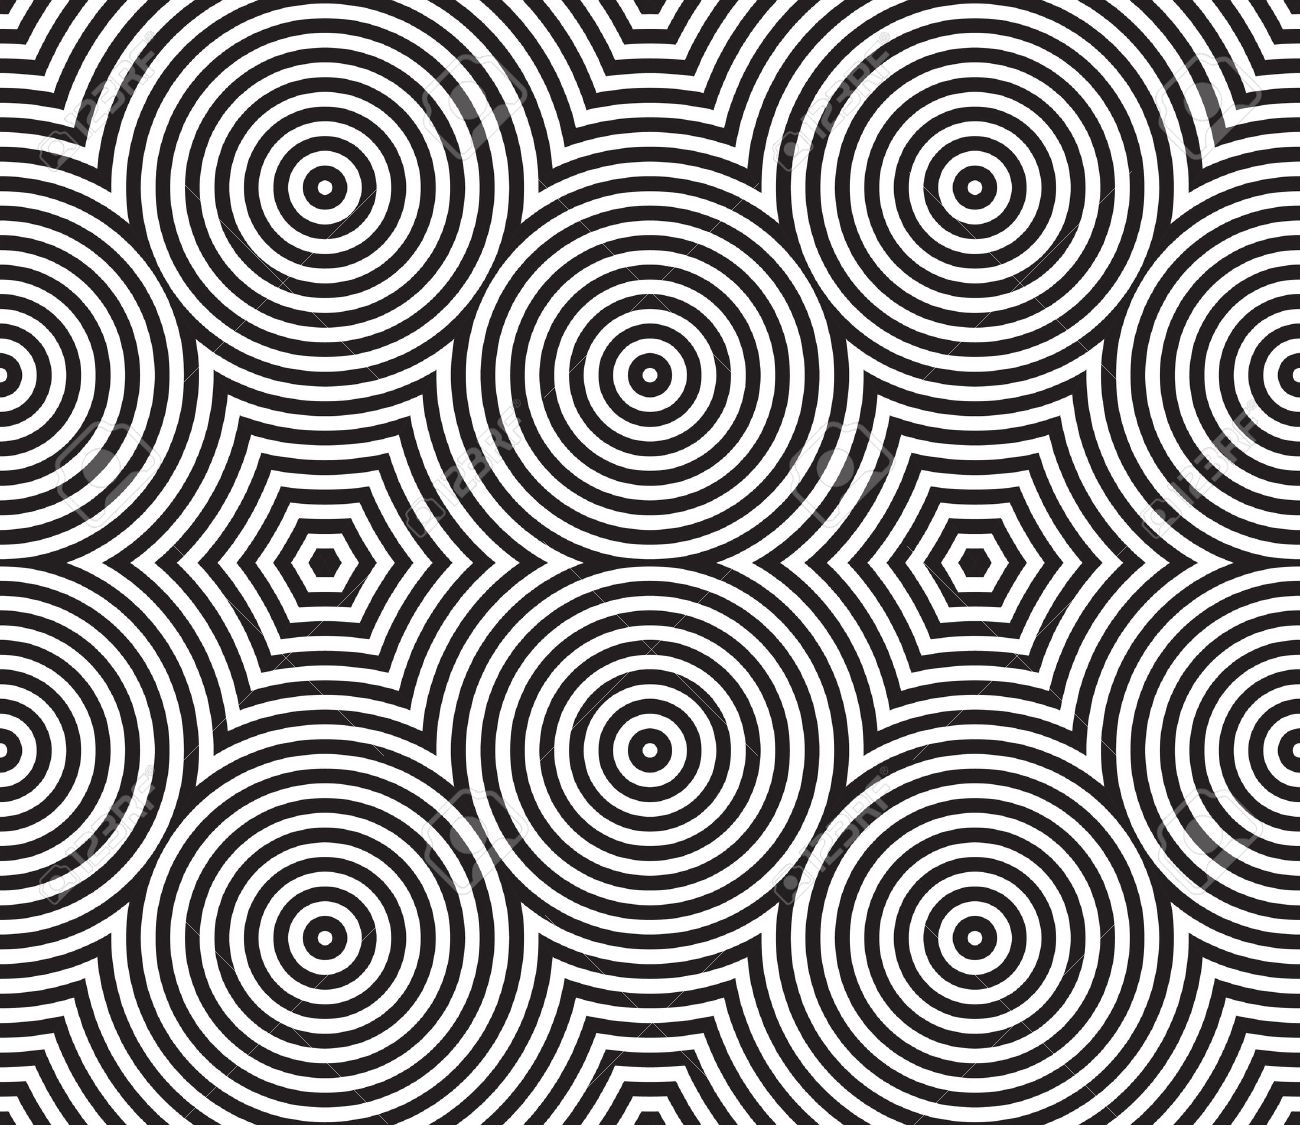 Black and White Psychedelic Circular Textile Patterns ??? Seamless Background Stock Photo - 25298932